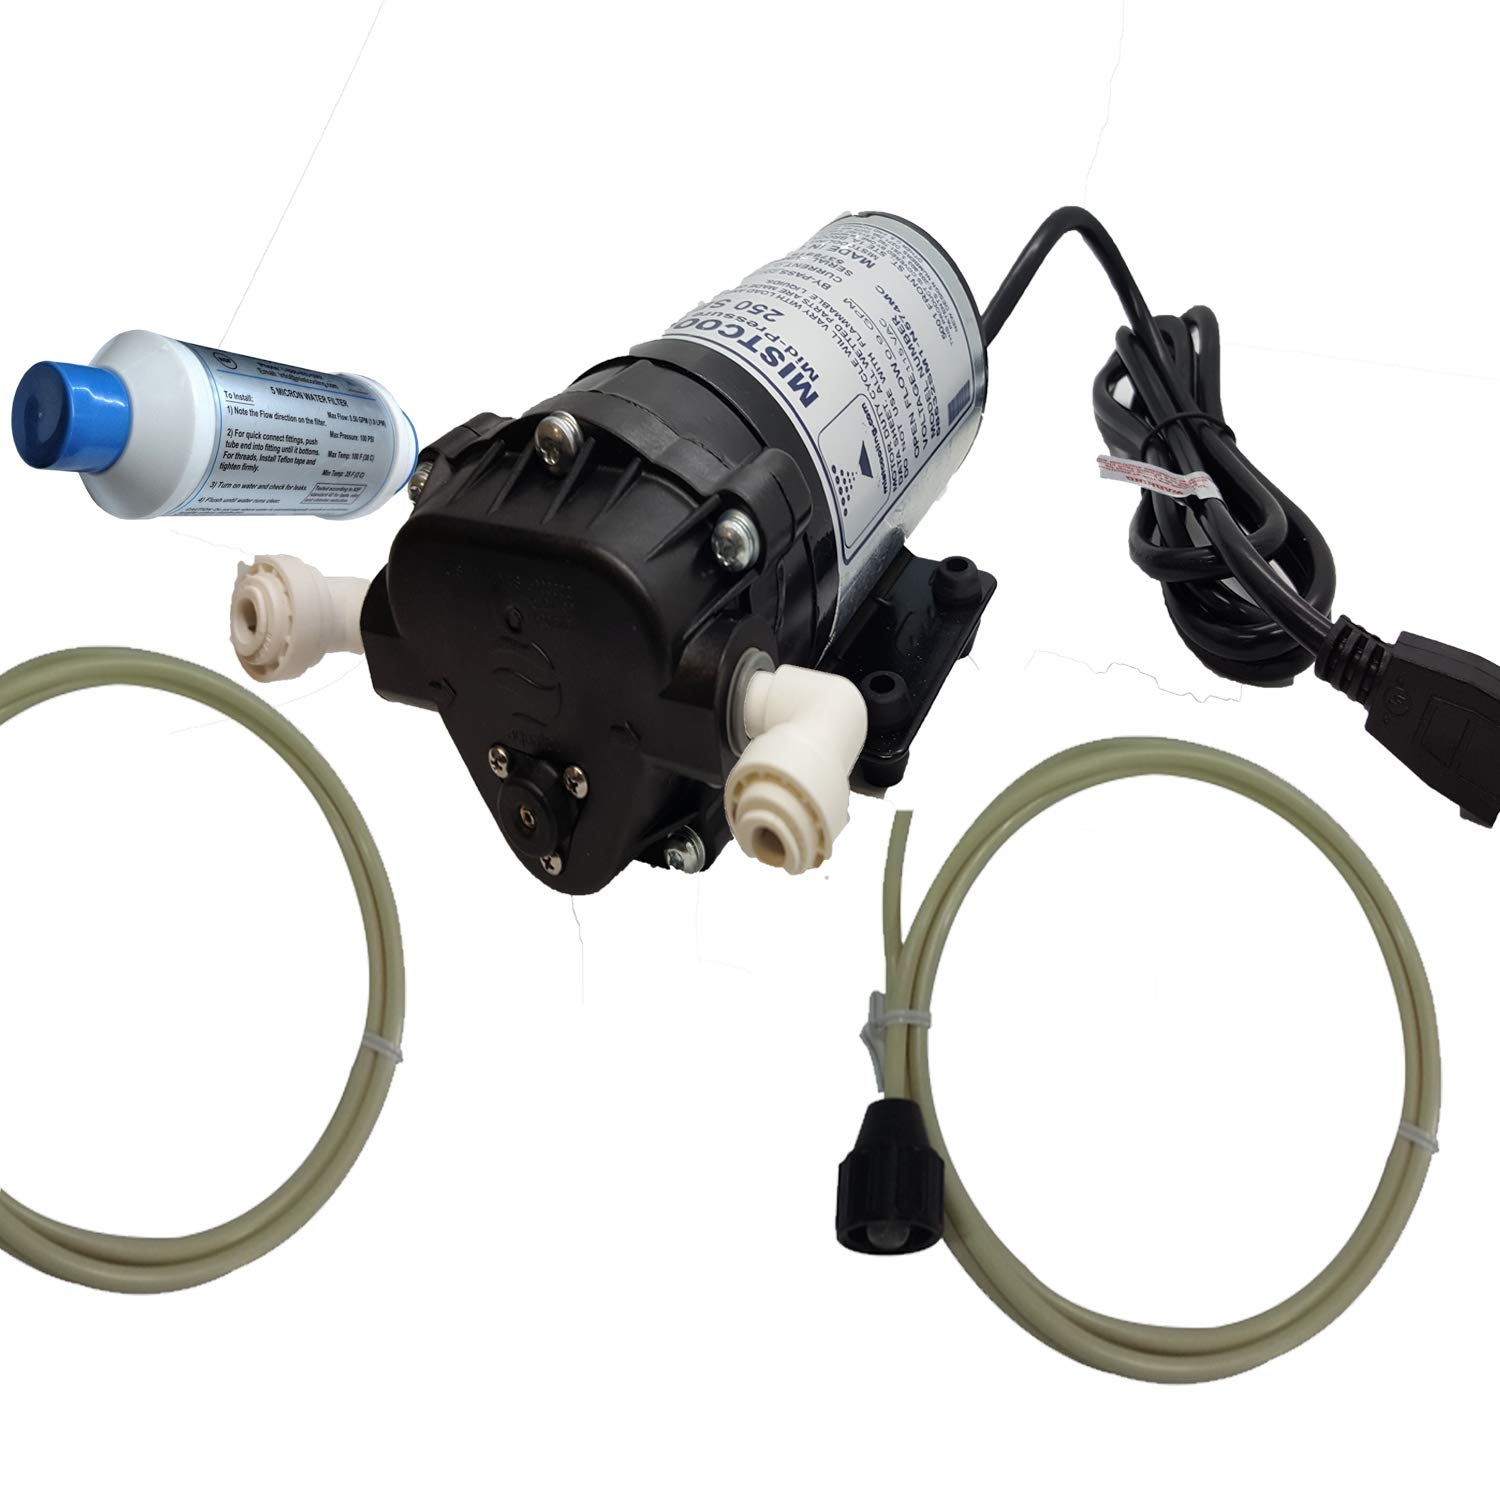 mistcooling 160 PSI Booster Pump | Mid Pressure Misting Pump | Can be Used for Fan Misting System and Line Based Misting Systems (110V AC) by mistcooling